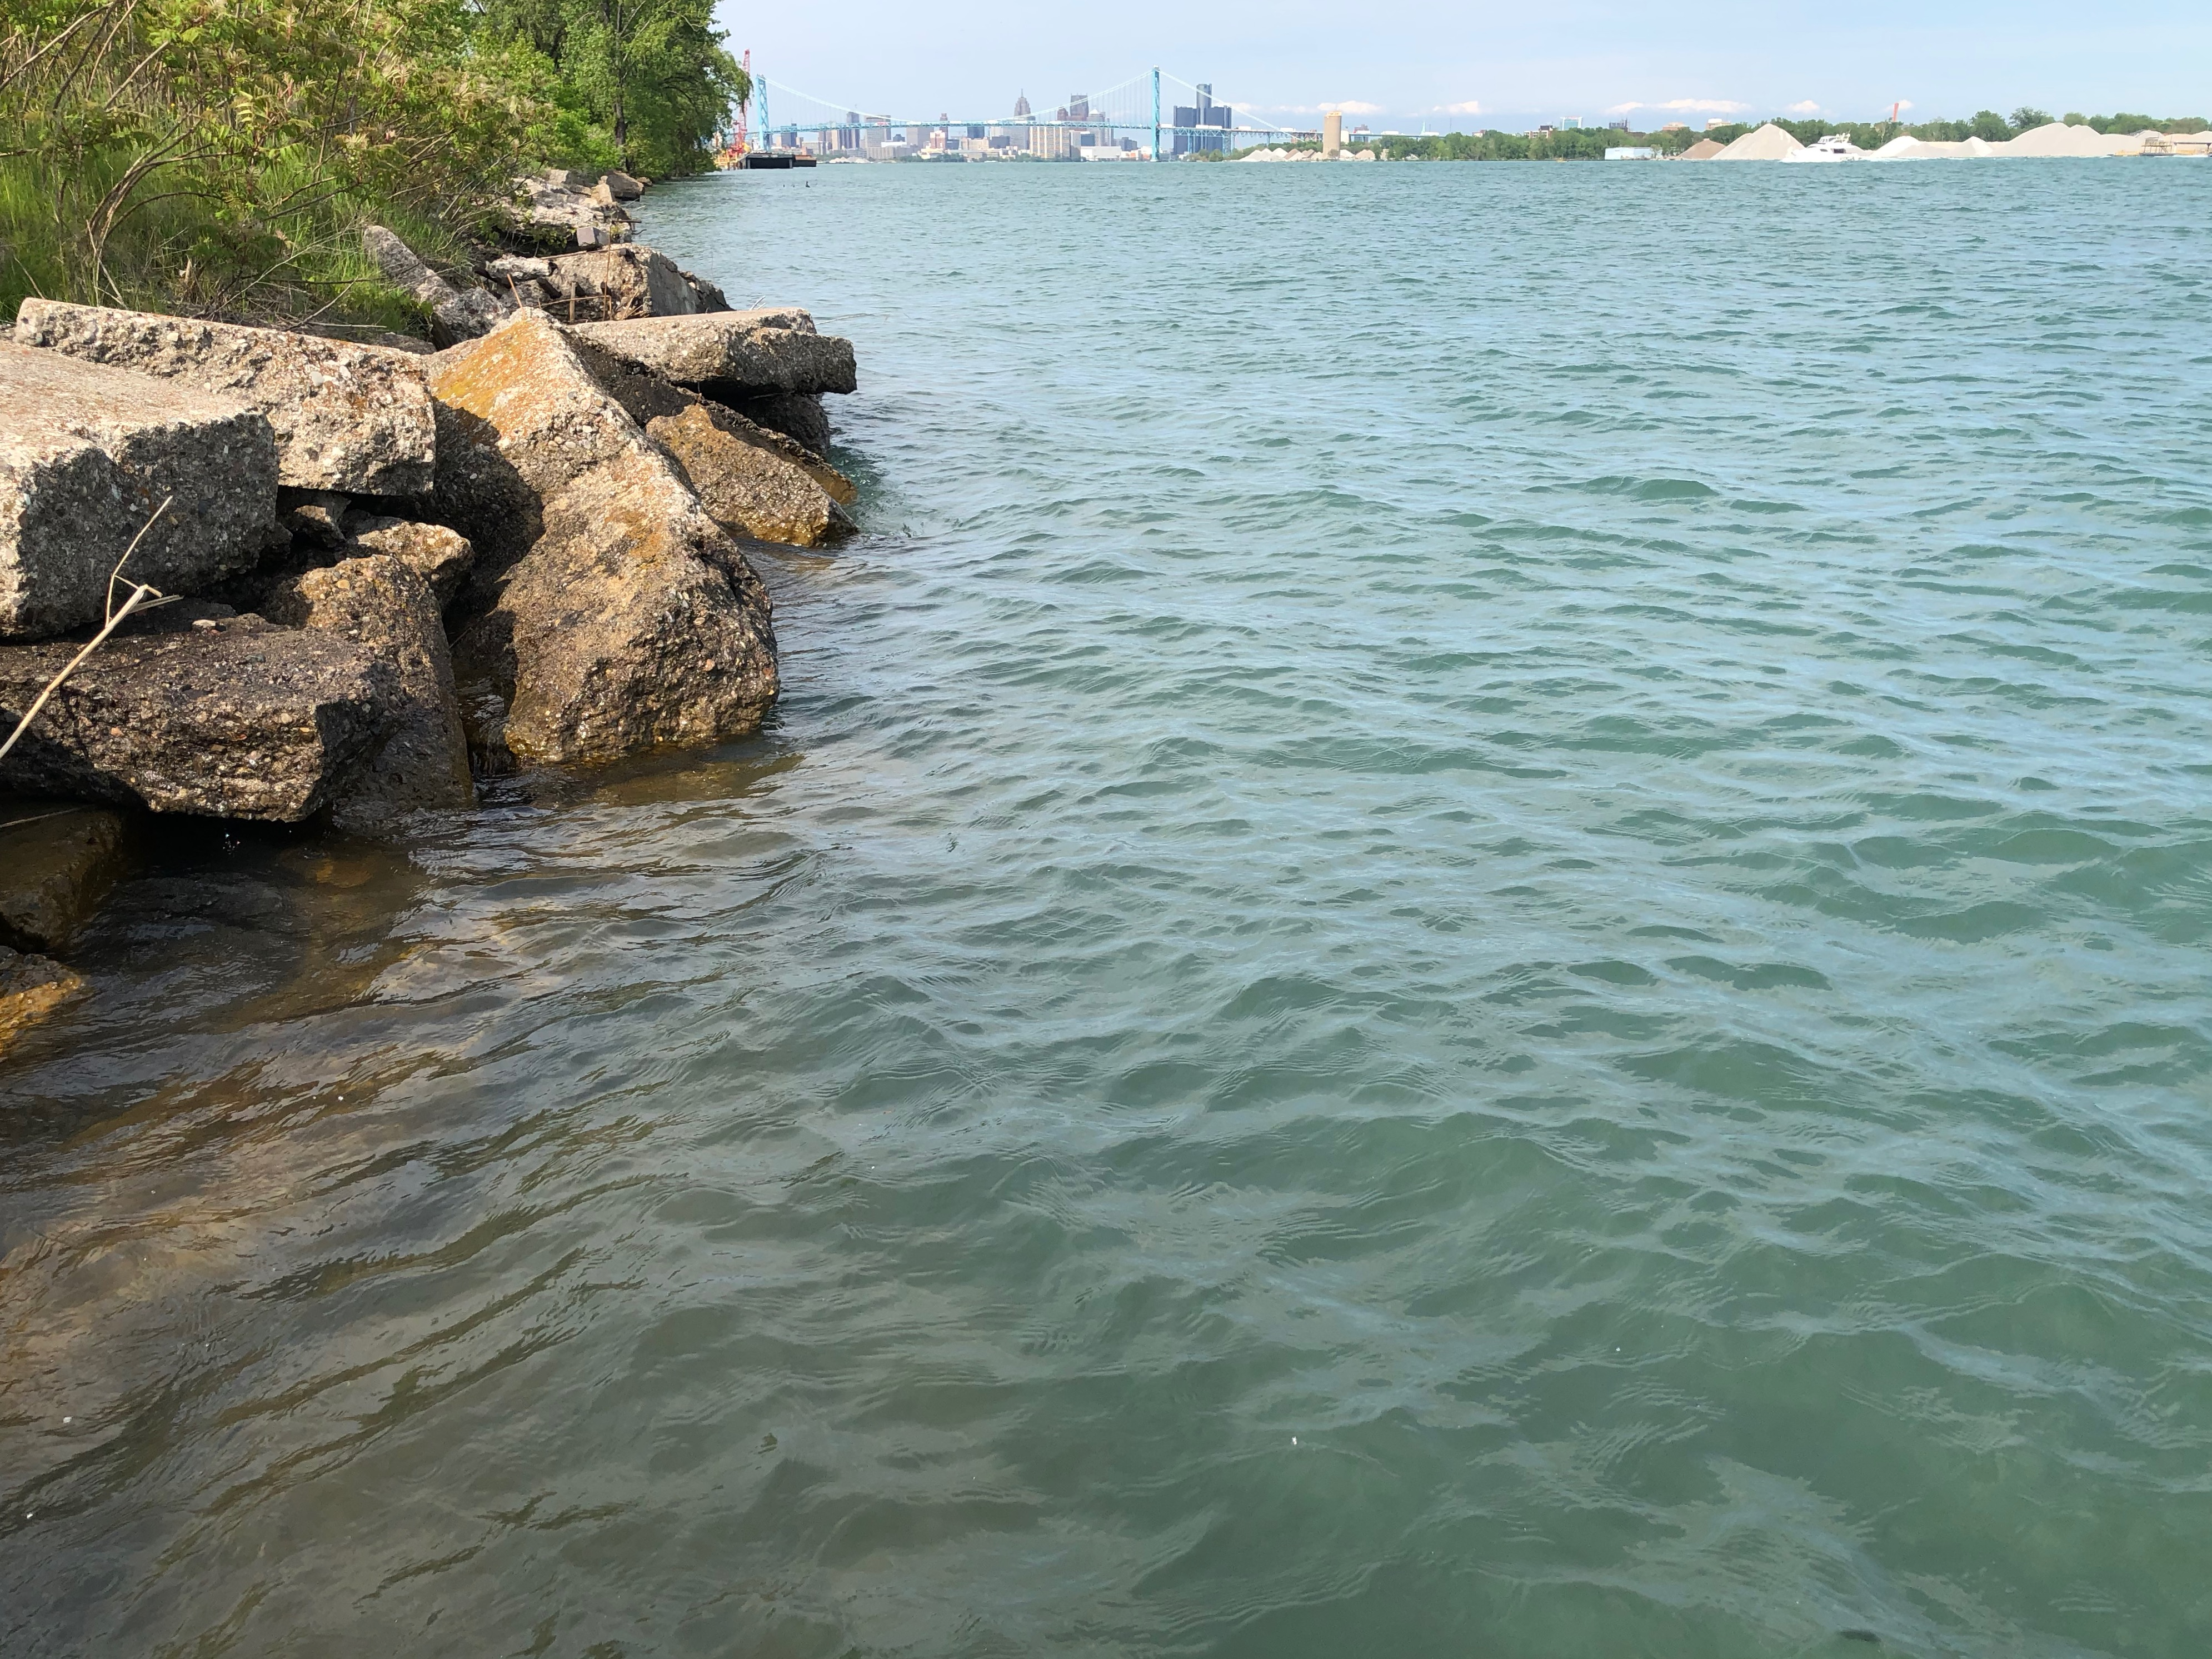 Property contaminated with uranium, used during WWII collapses into Detroit River